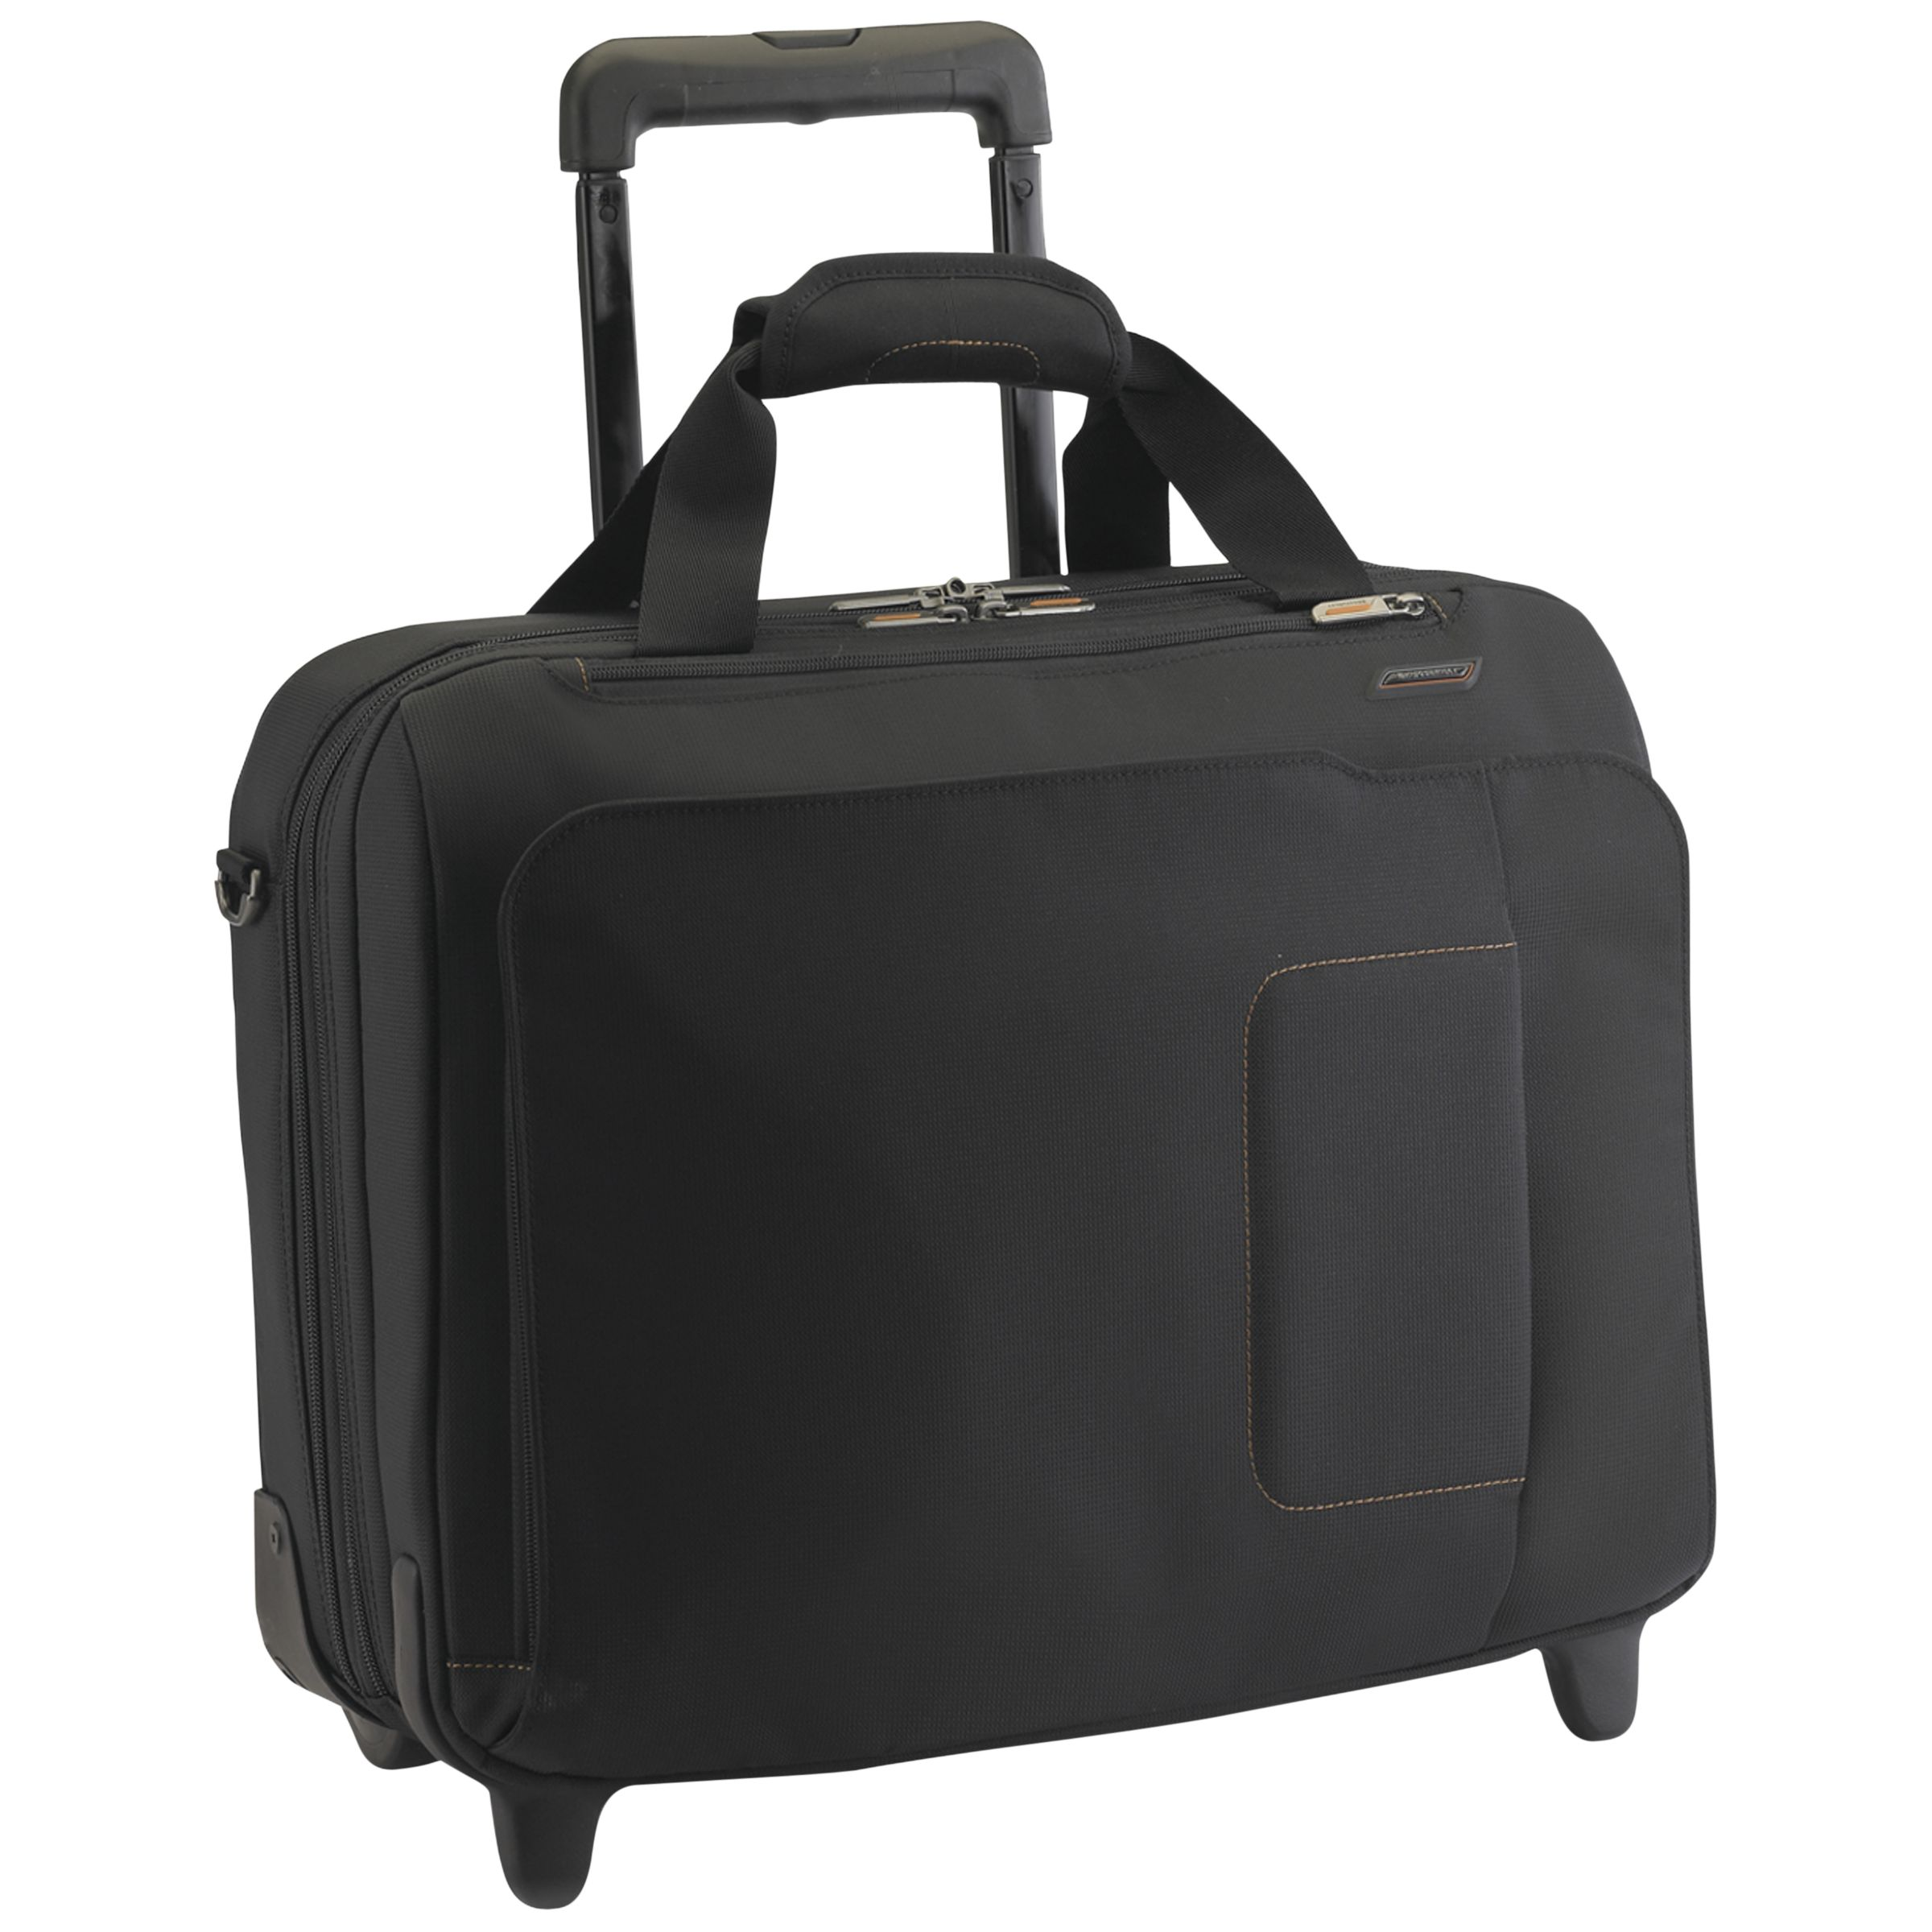 Briggs & Riley Verb Roam 17 Inch Rolling Laptop Case Black